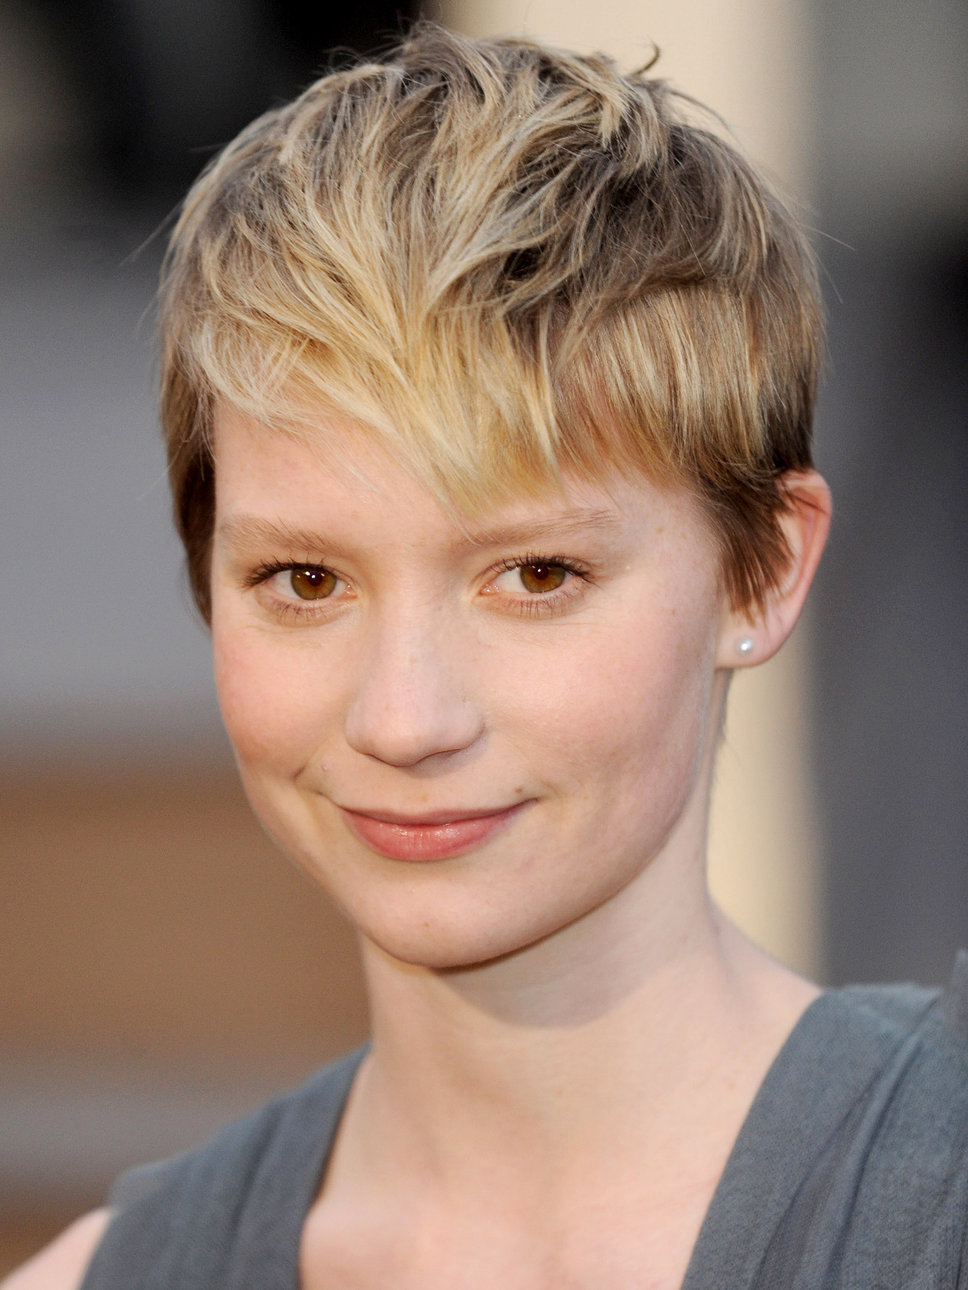 Hairstyles & Haircuts: Celebrity Pixie Hairstyles